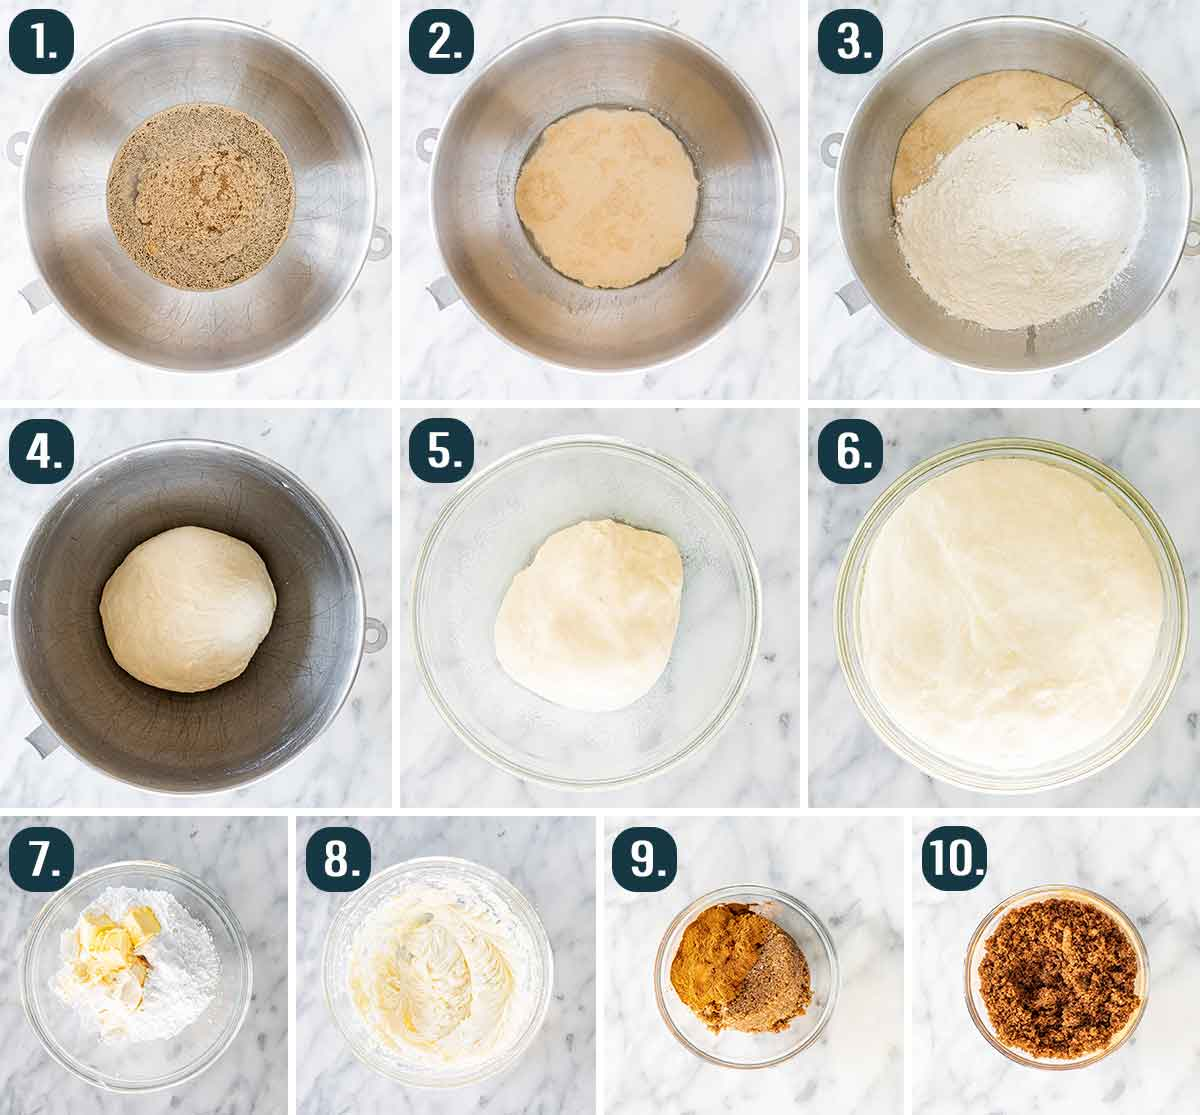 process shots showing how to make dough for cinnamon rolls